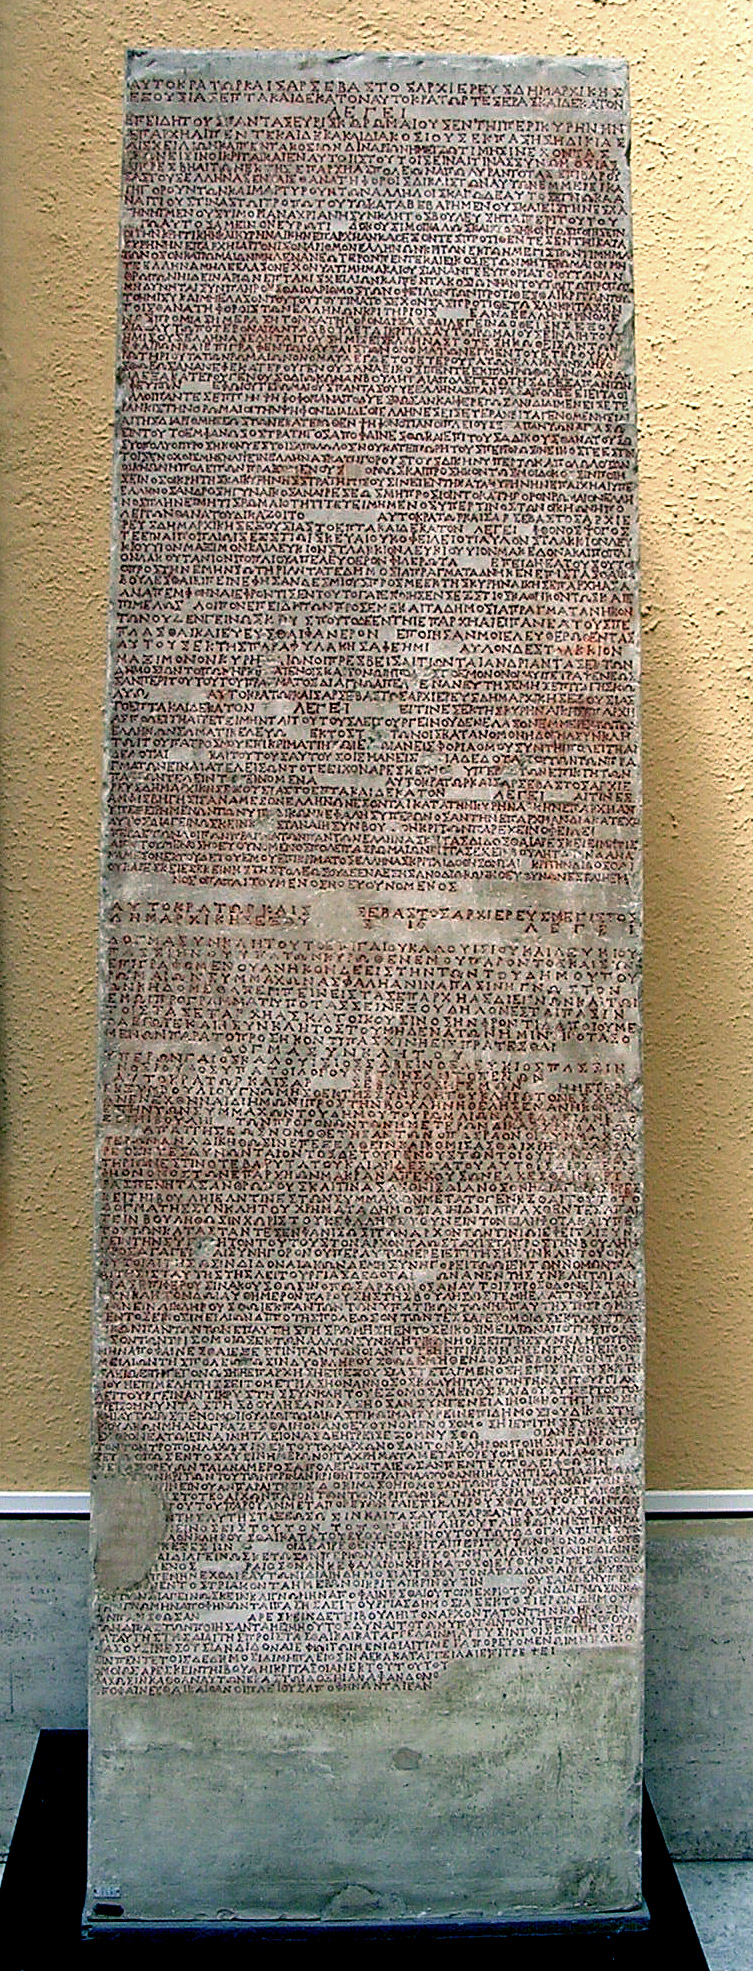 Five edicts of emperor Augustus from Cyrene. 6—4 BCE. Copy. Rome, Museum of Roman Civilization